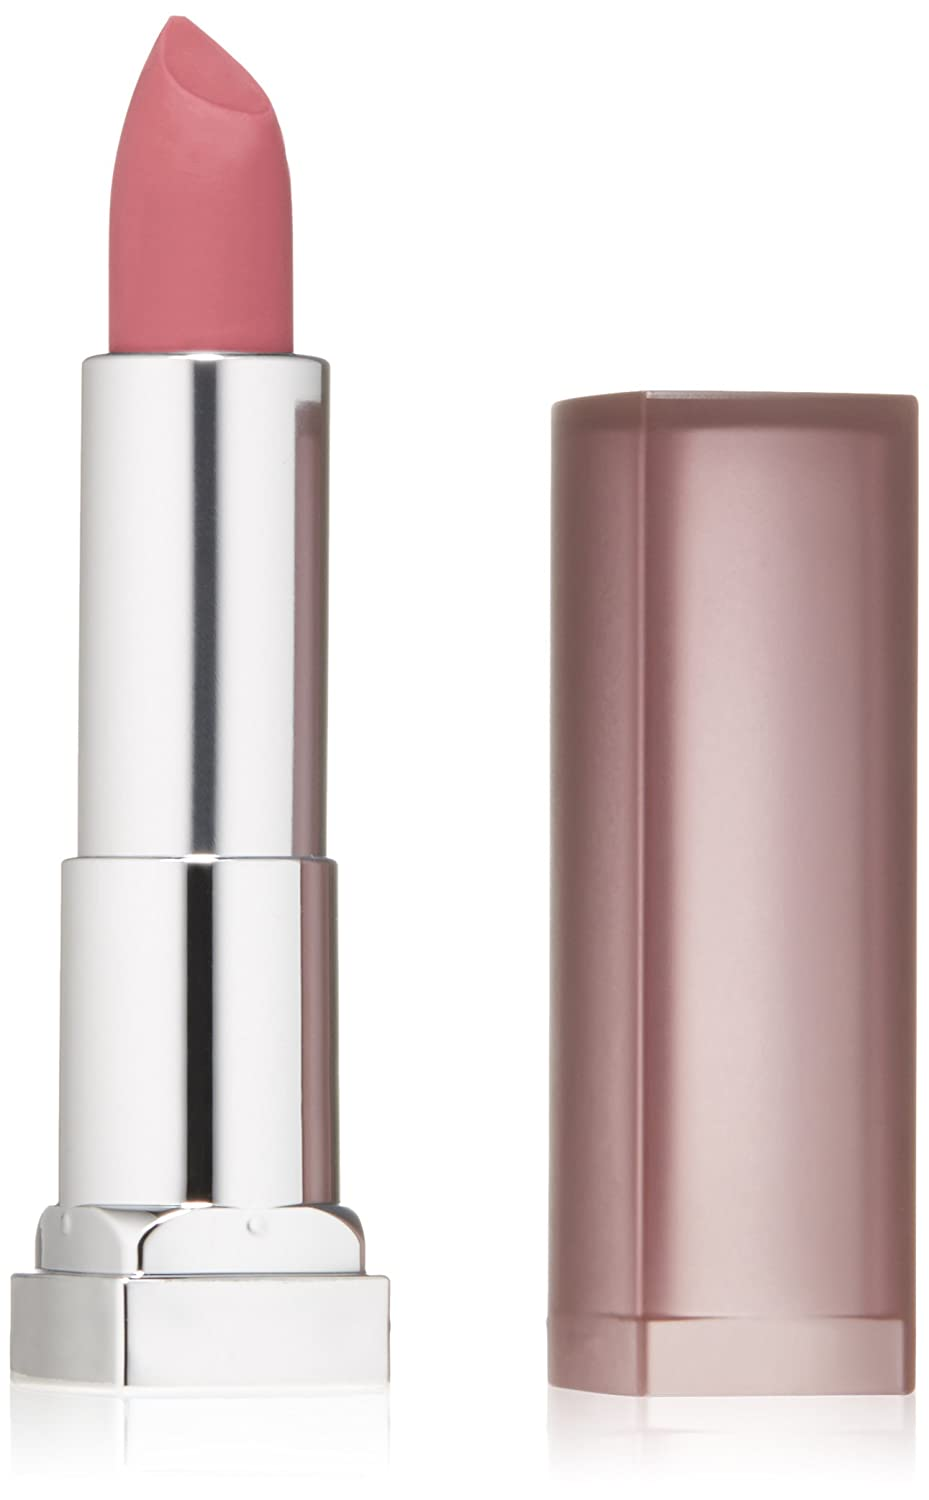 amazoncom maybelline new york color sensational creamy matte lip color lust for blush 015 ounce beauty - Gemey Maybelline Color Sensational